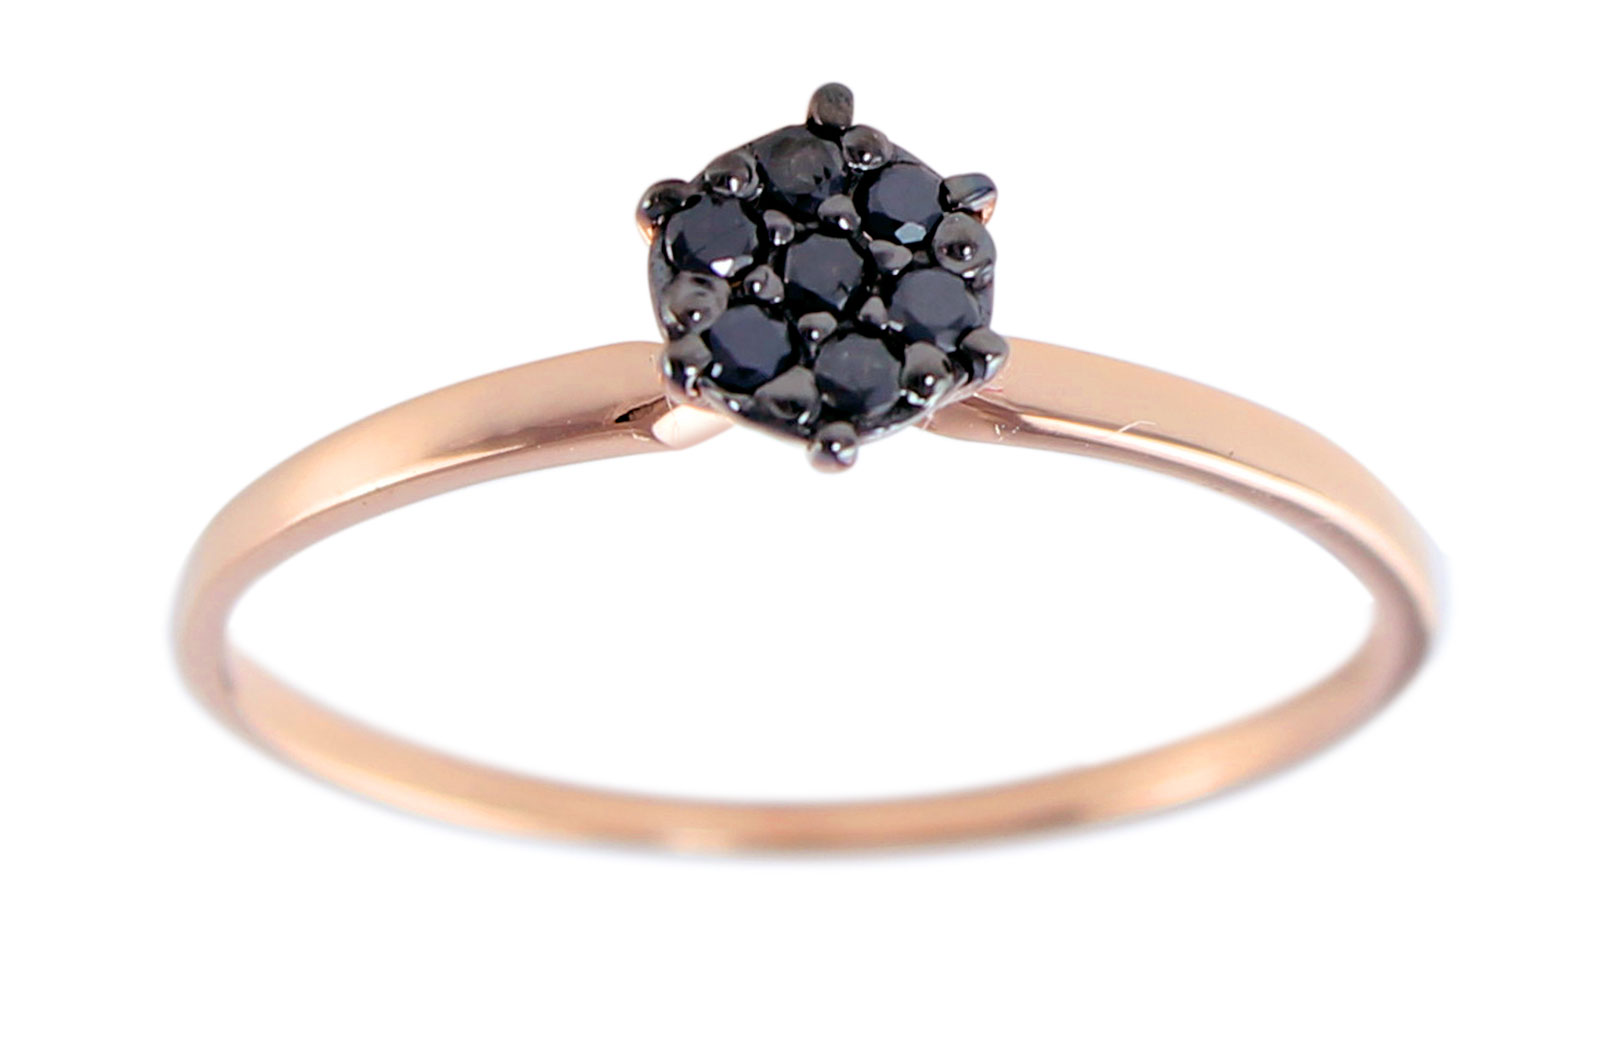 Vera Perla  18K Solid Black and Yellow Gold 0.07Cts Genuine Black Diamonds  Solitaire Ring -Size 6.5 US